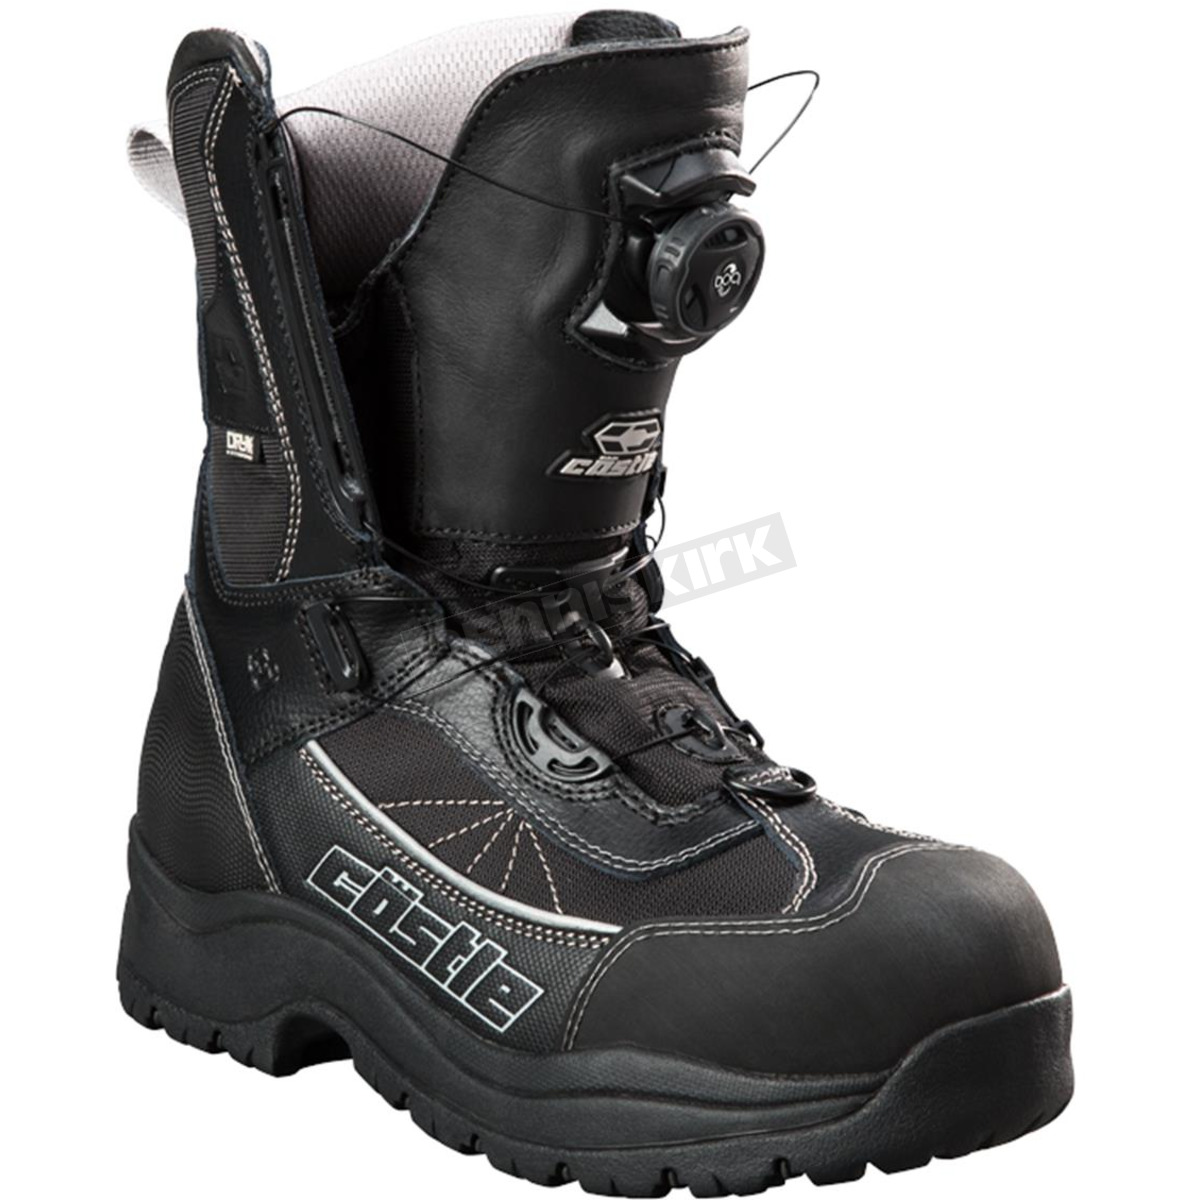 NEW NON-CURRENT CASTLE X LADIES BARRIER SNOWMOBILE BOOTS 84-13XX